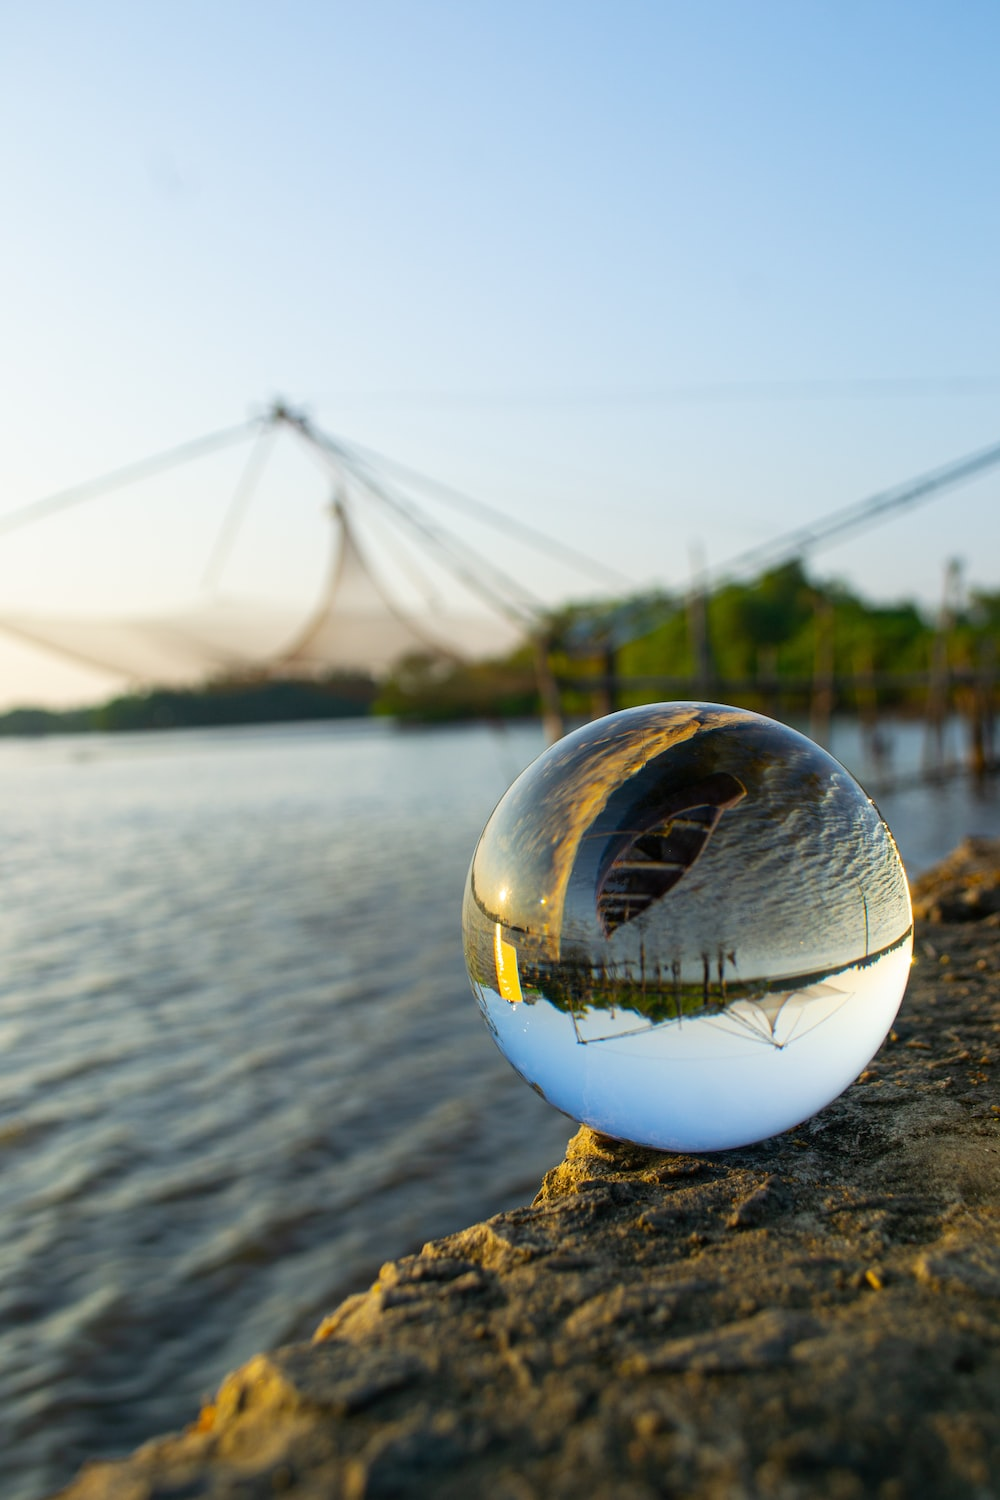 clear glass ball on body of water during daytime